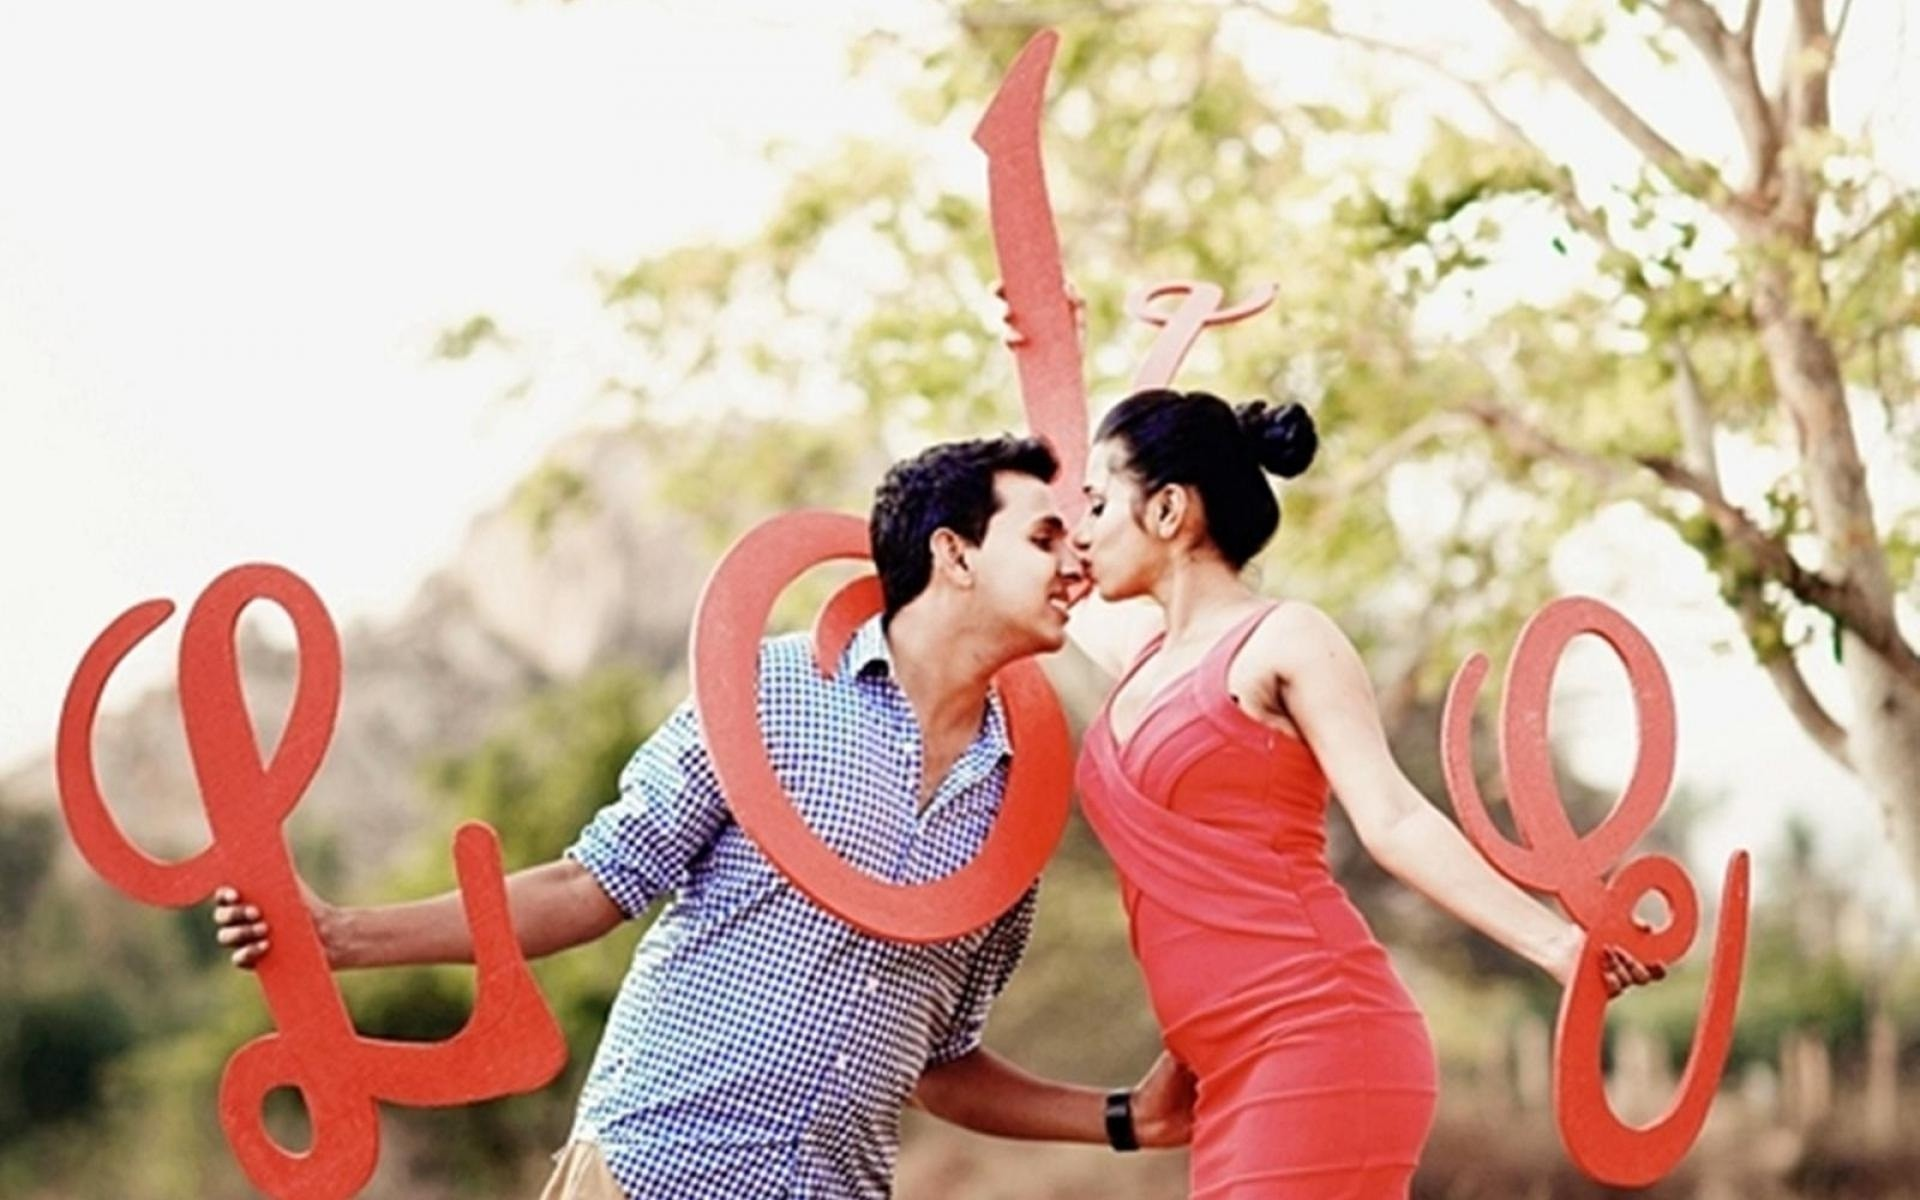 New Love Images Wallpapers 2018 74 Images